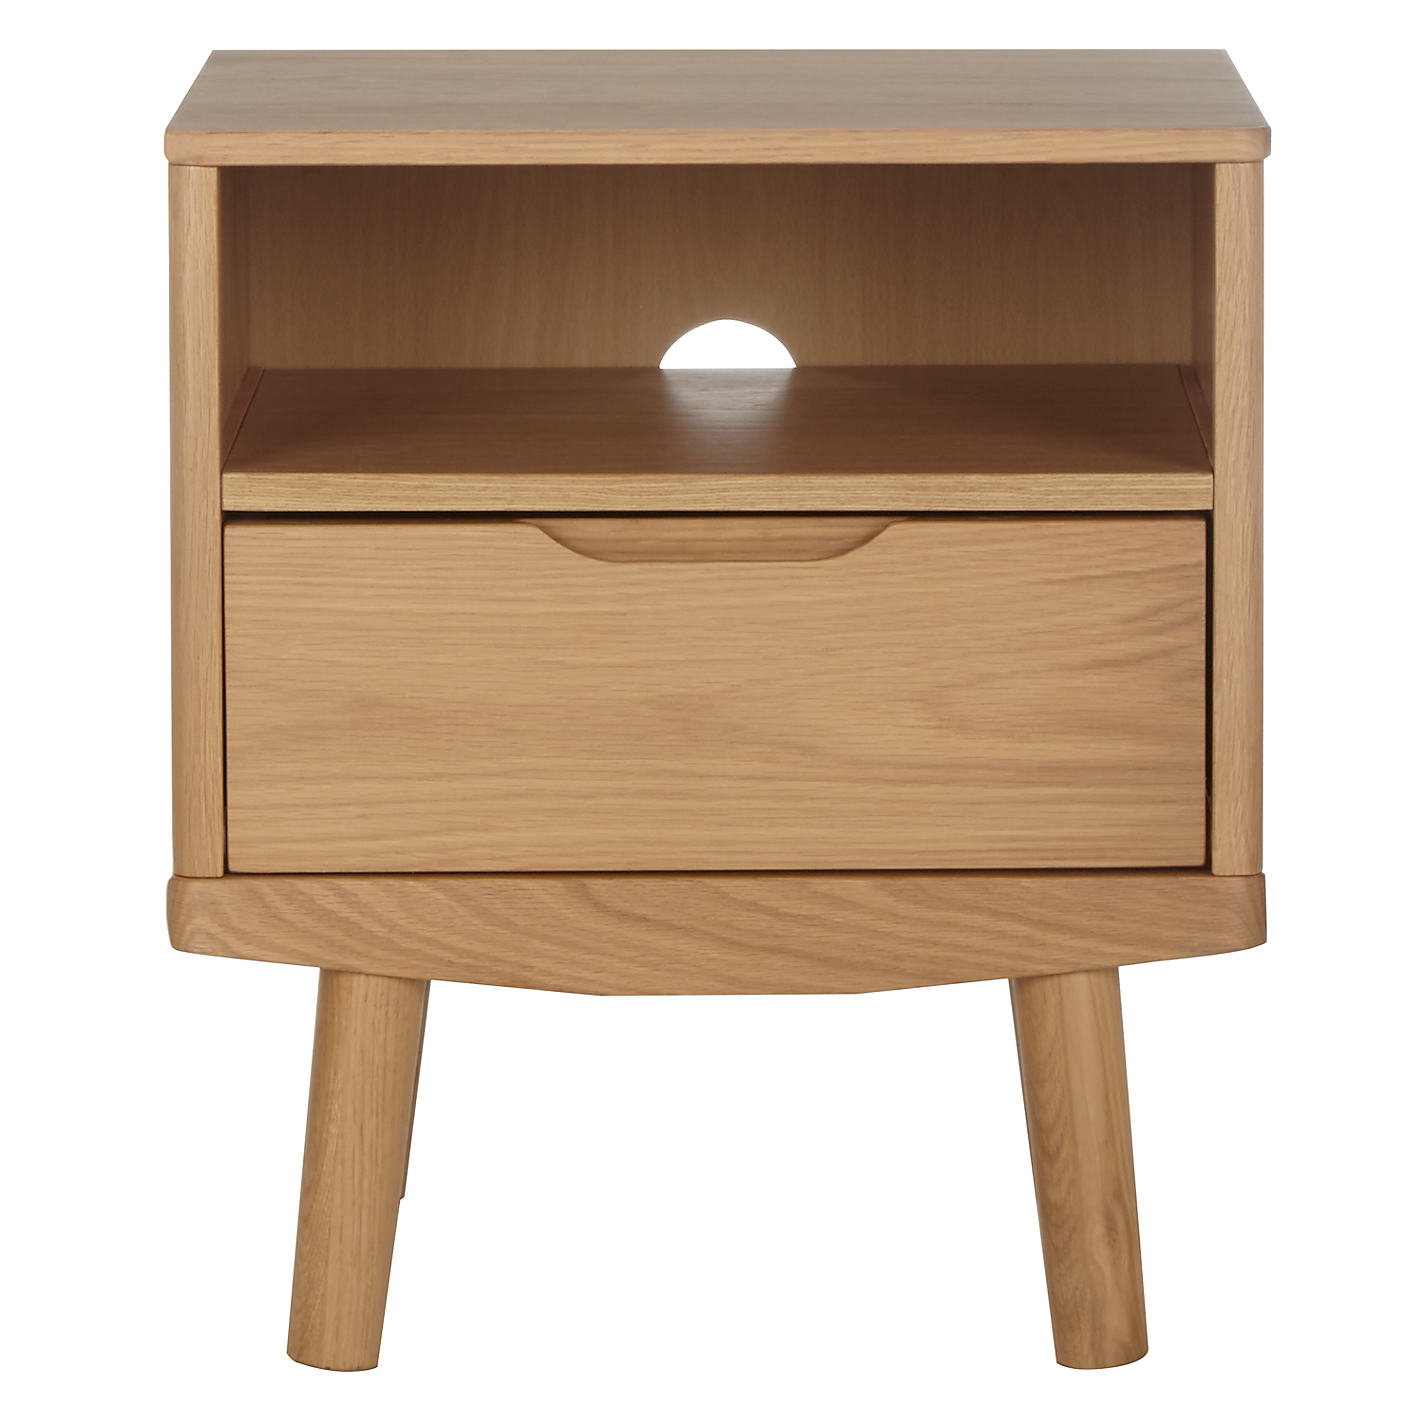 Buy House by John Lewis Bow 1 Drawer Bedside Table, Oak | John Lewis